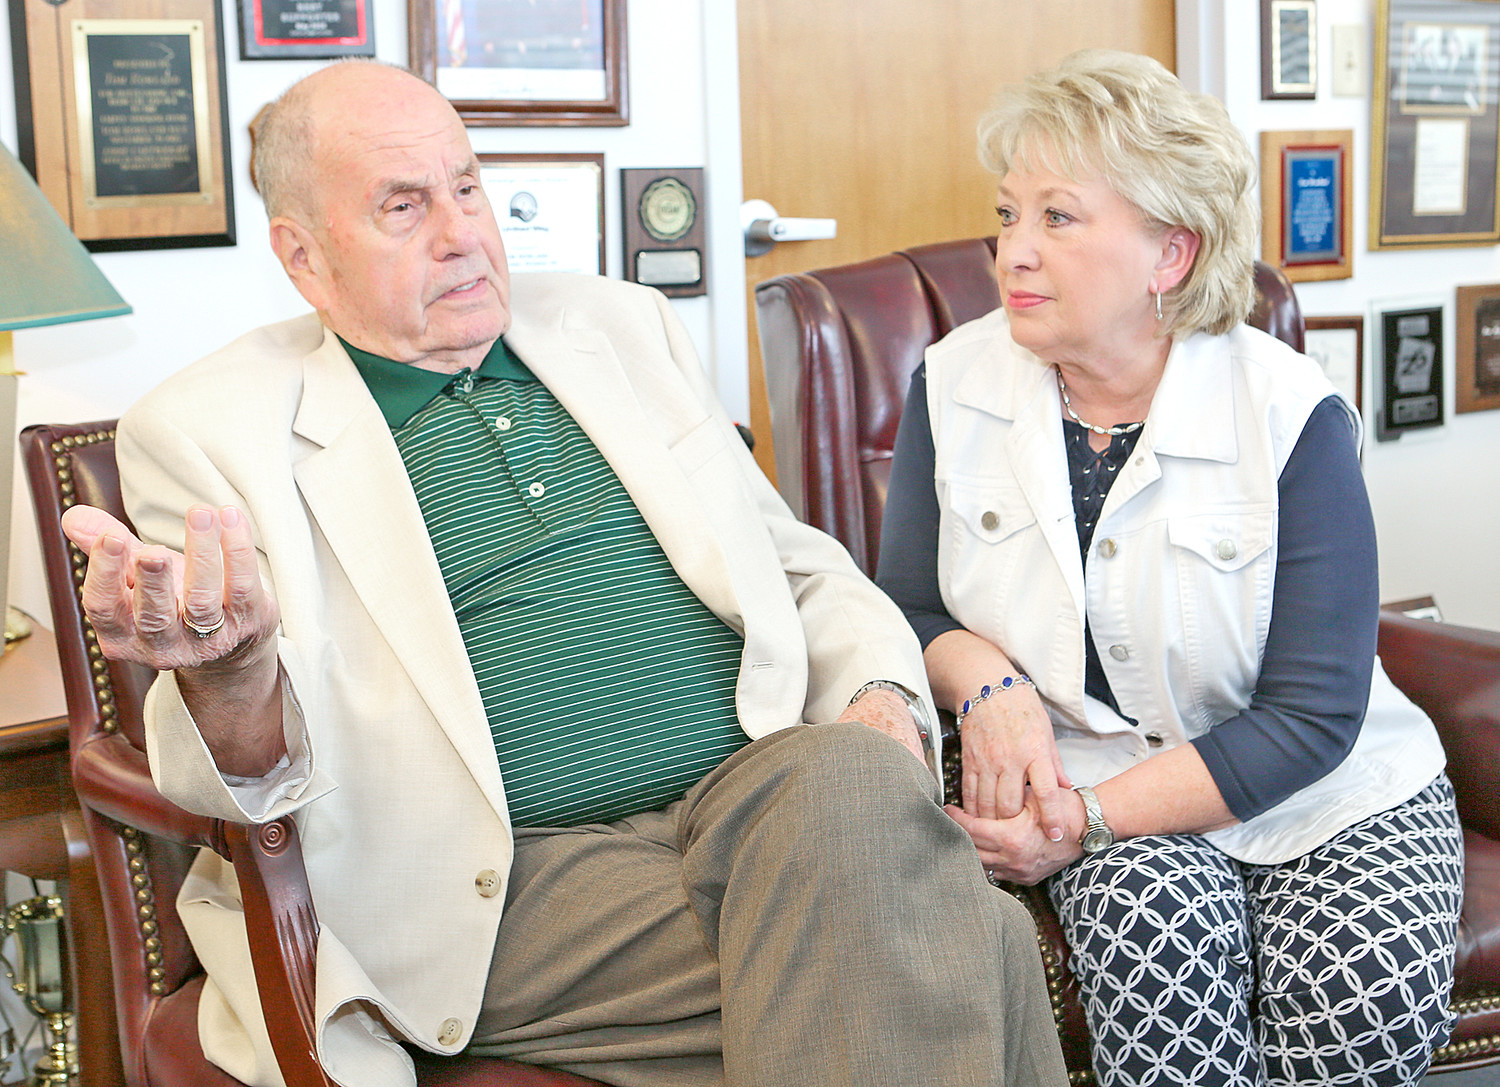 MAYOR TOM ROWLAND and First Lady Sandra, who are entering their final days as Cleveland's first family, recently sat down with the Cleveland Daily Banner to discuss what Mayor-elect Kevin Brooks, and new First Lady Kim, can expect once they take office at City Hall.